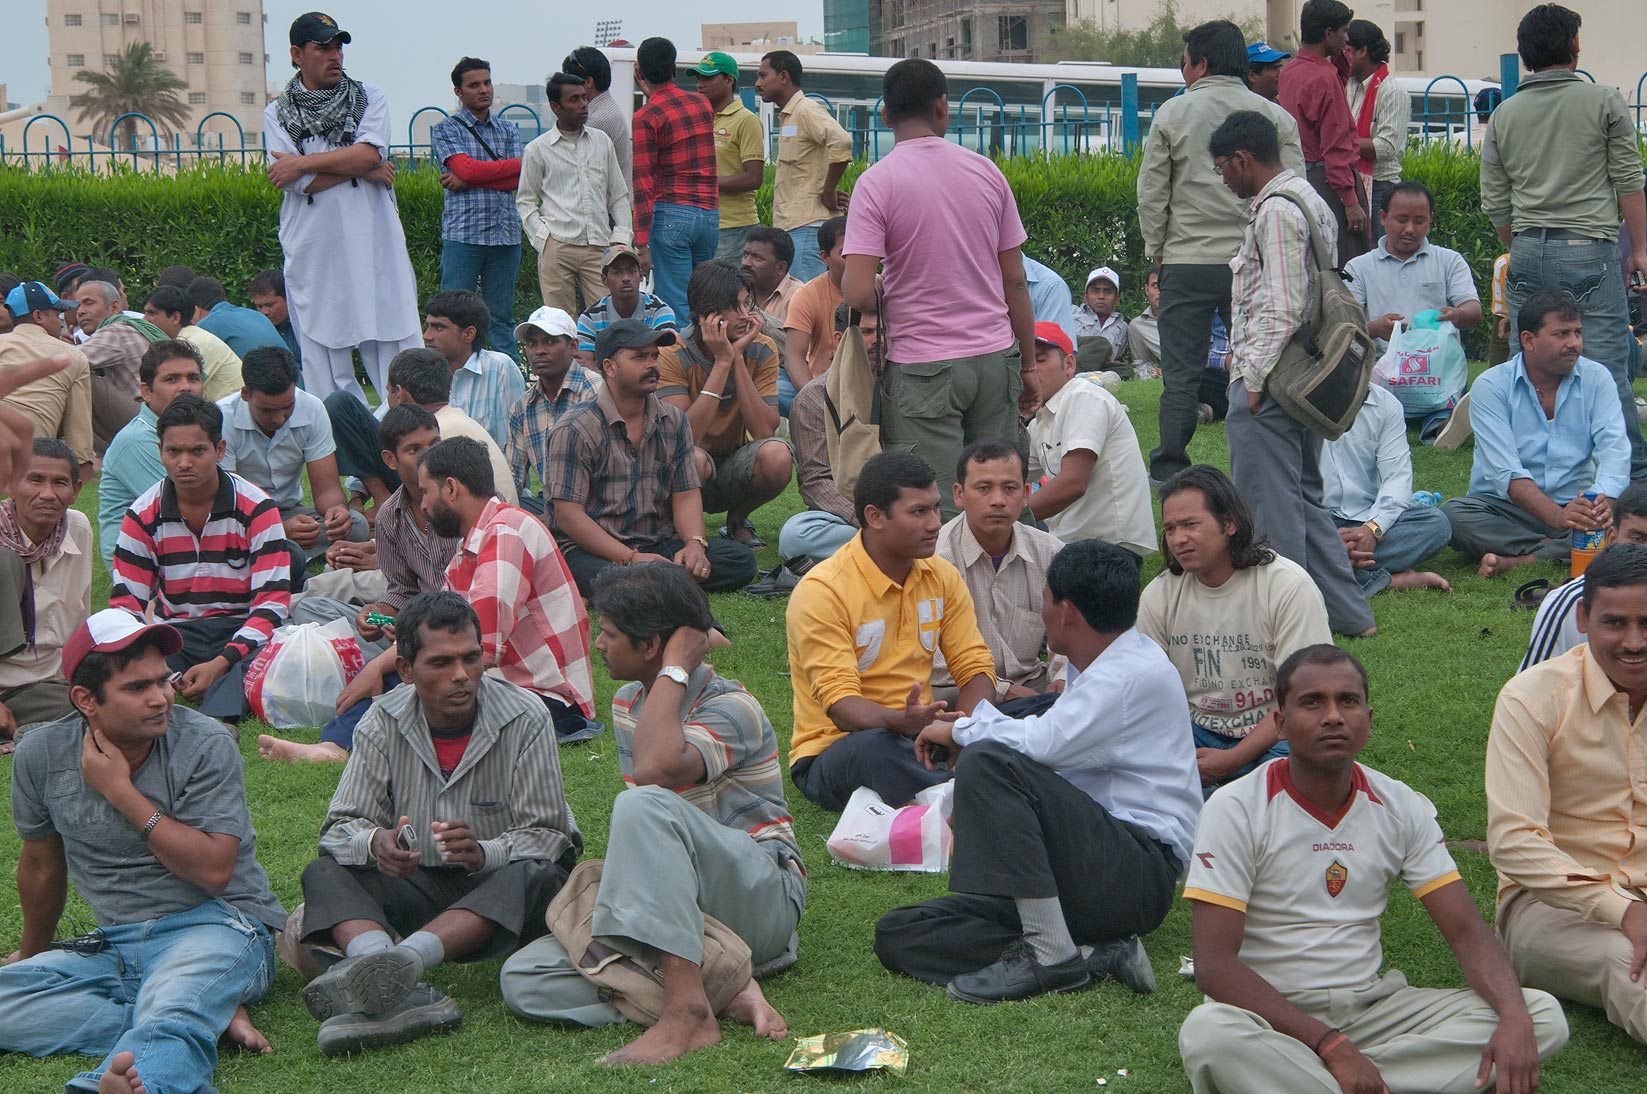 Workers resting on a lawn on Friday evening at Central Bus Station Al Ghanim. Doha, Qatar